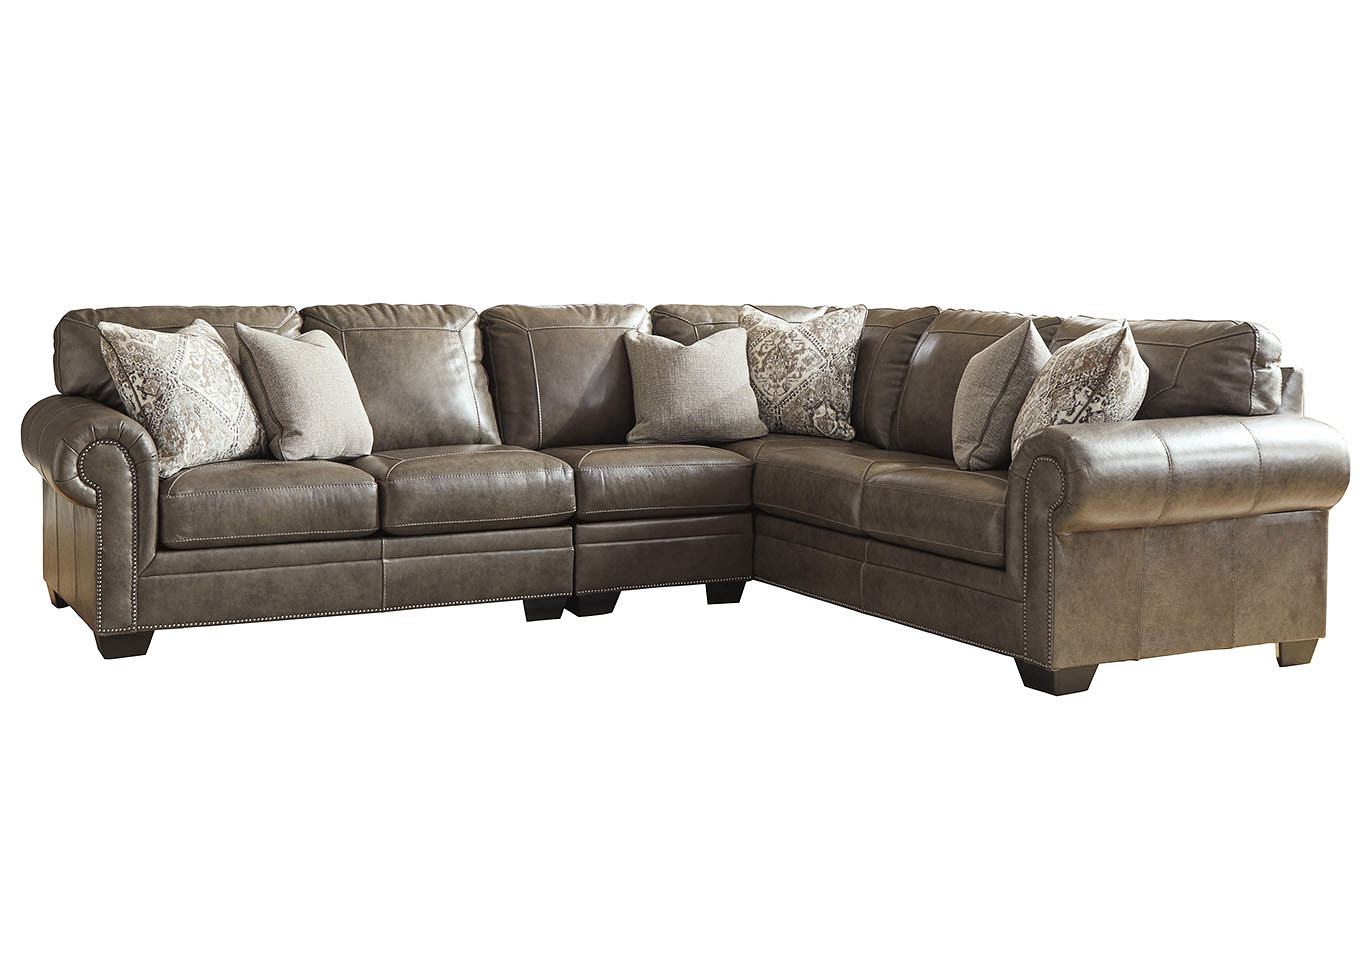 Roleson Quarry LAF Chaise Sectional,Signature Design By Ashley